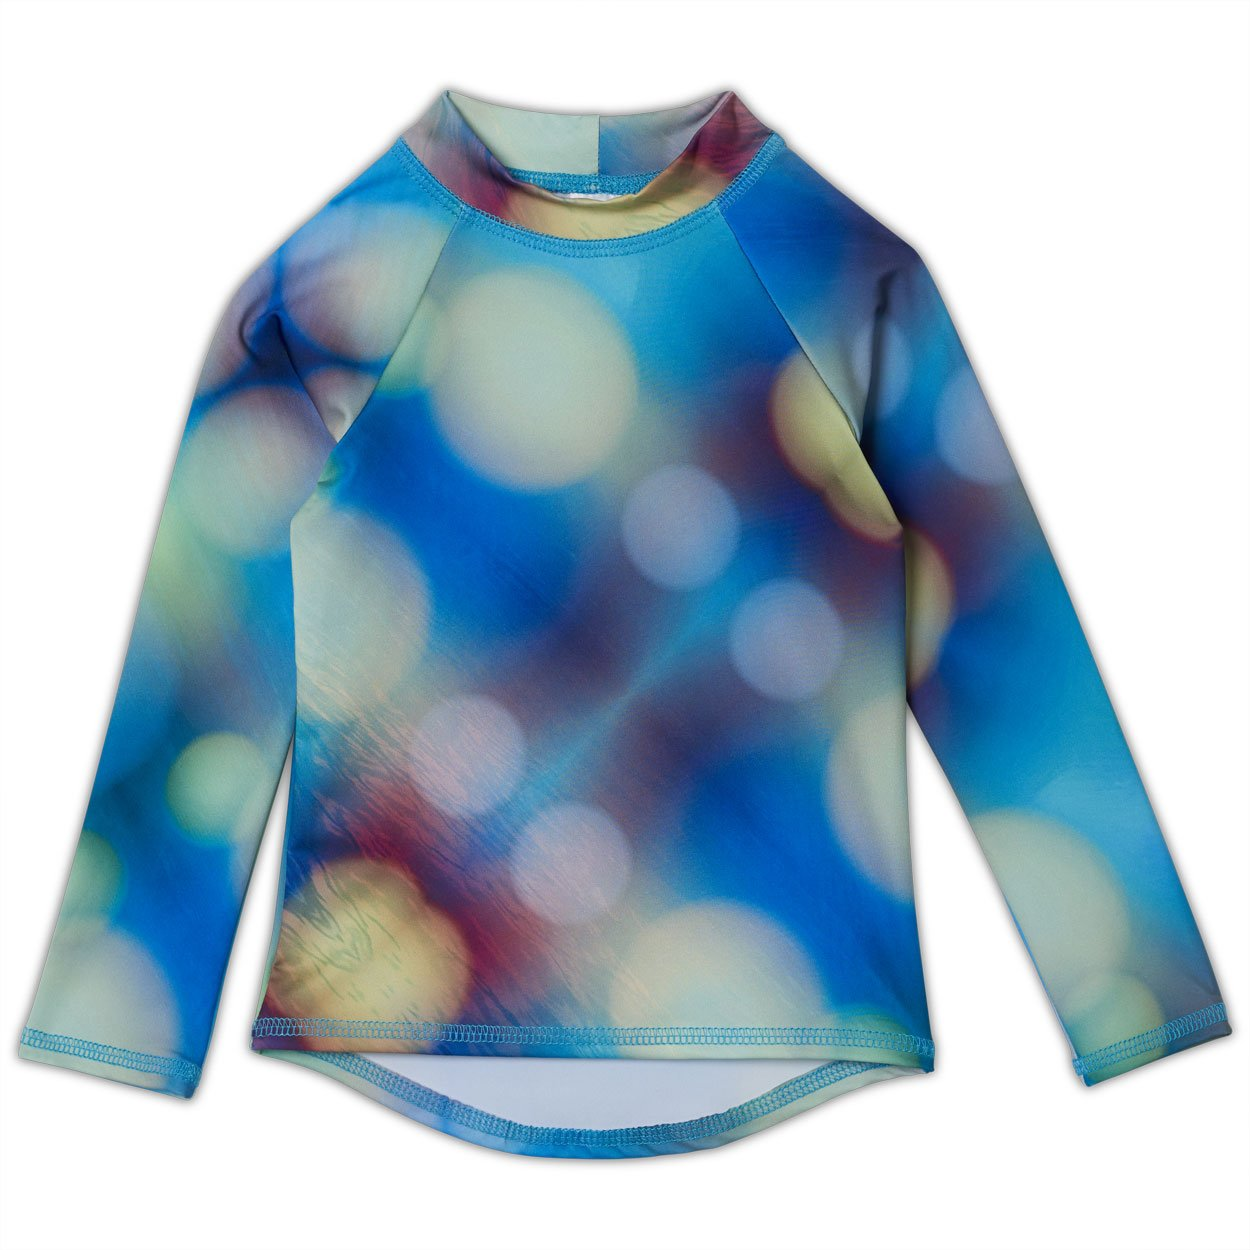 Blue Abstract Long Sleeve Rash Guard Top UPF 50+ for Kids